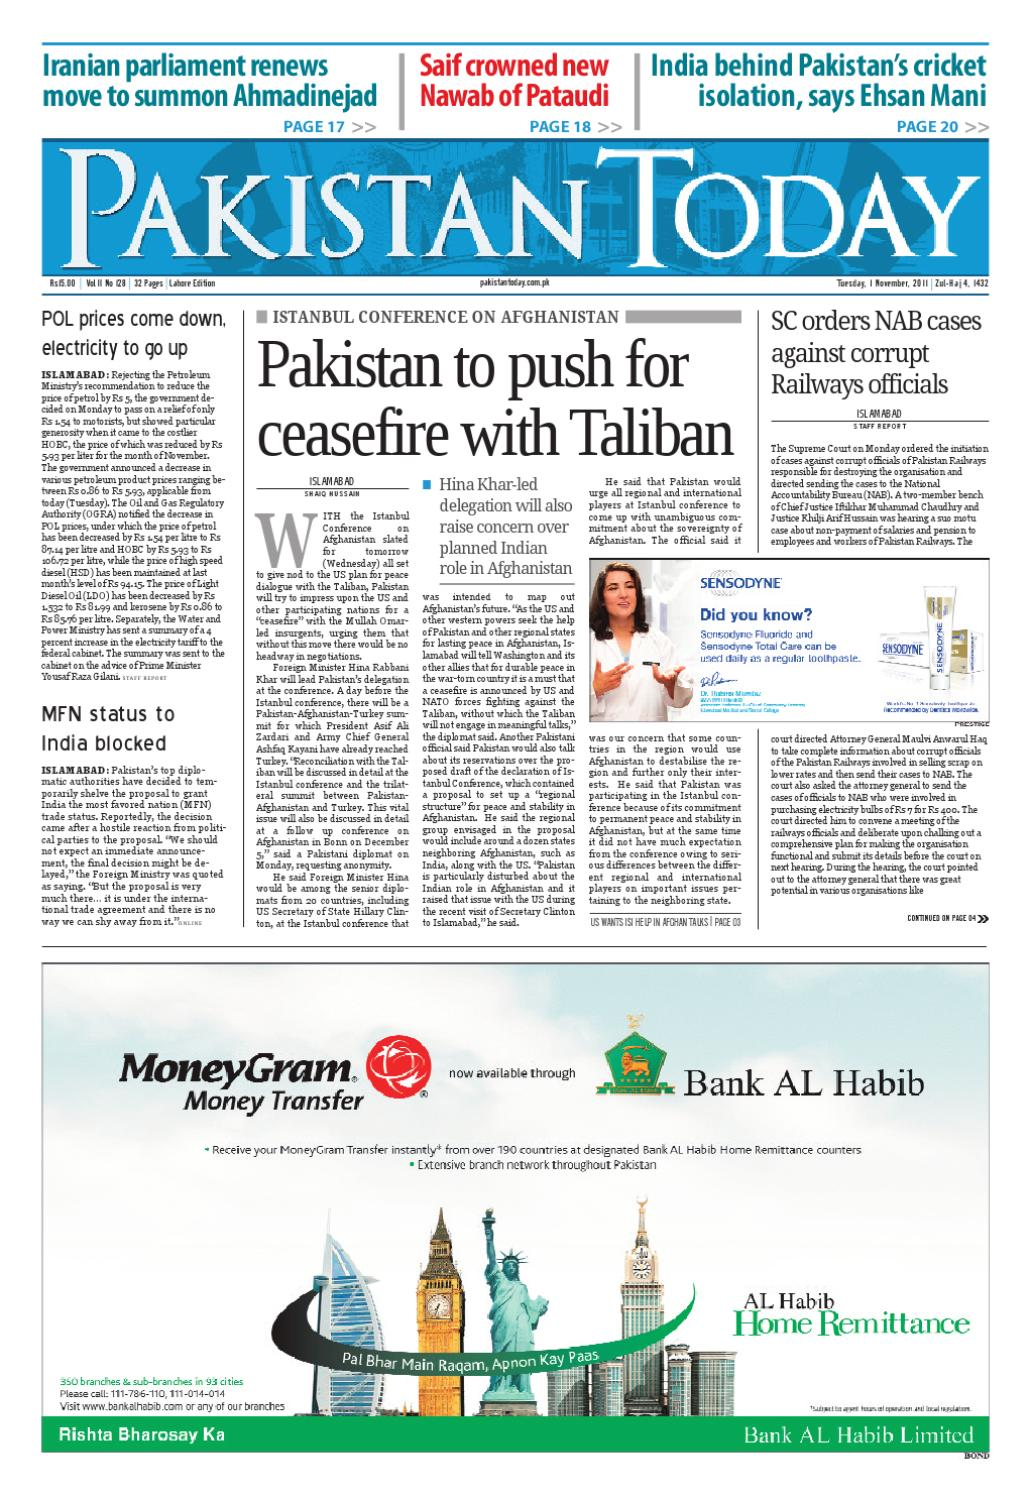 ePaper - 1st November 2011 by Pakistan Today - issuu